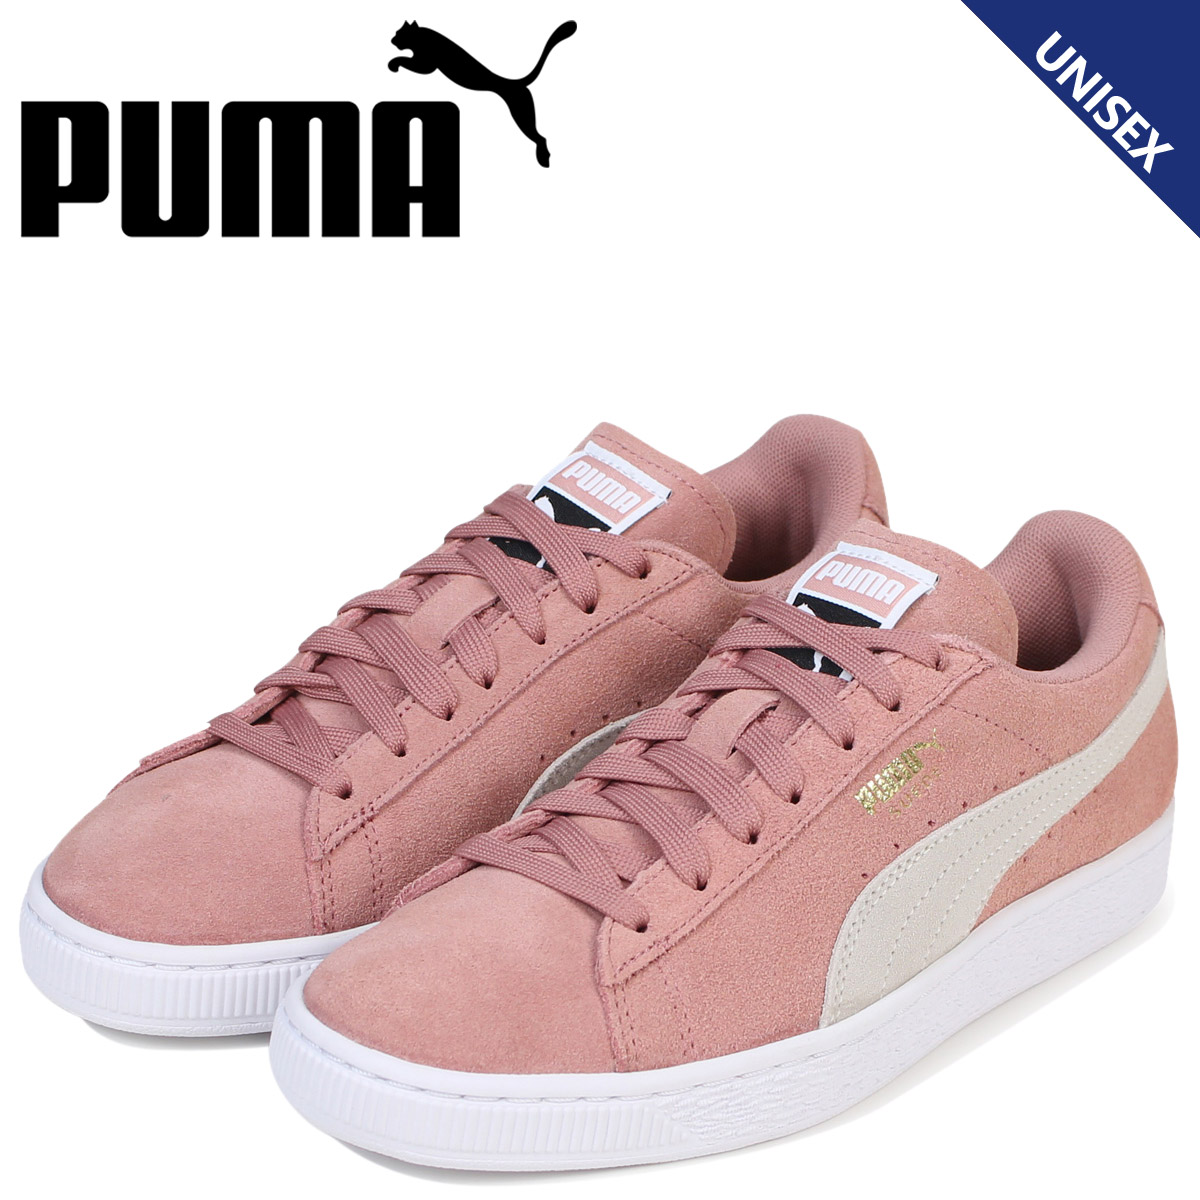 separation shoes 18984 c43be PUMA Puma suede classical music Lady's sneakers SUEDE CLASSIC WMNS  355,462-56 men's shoes pink